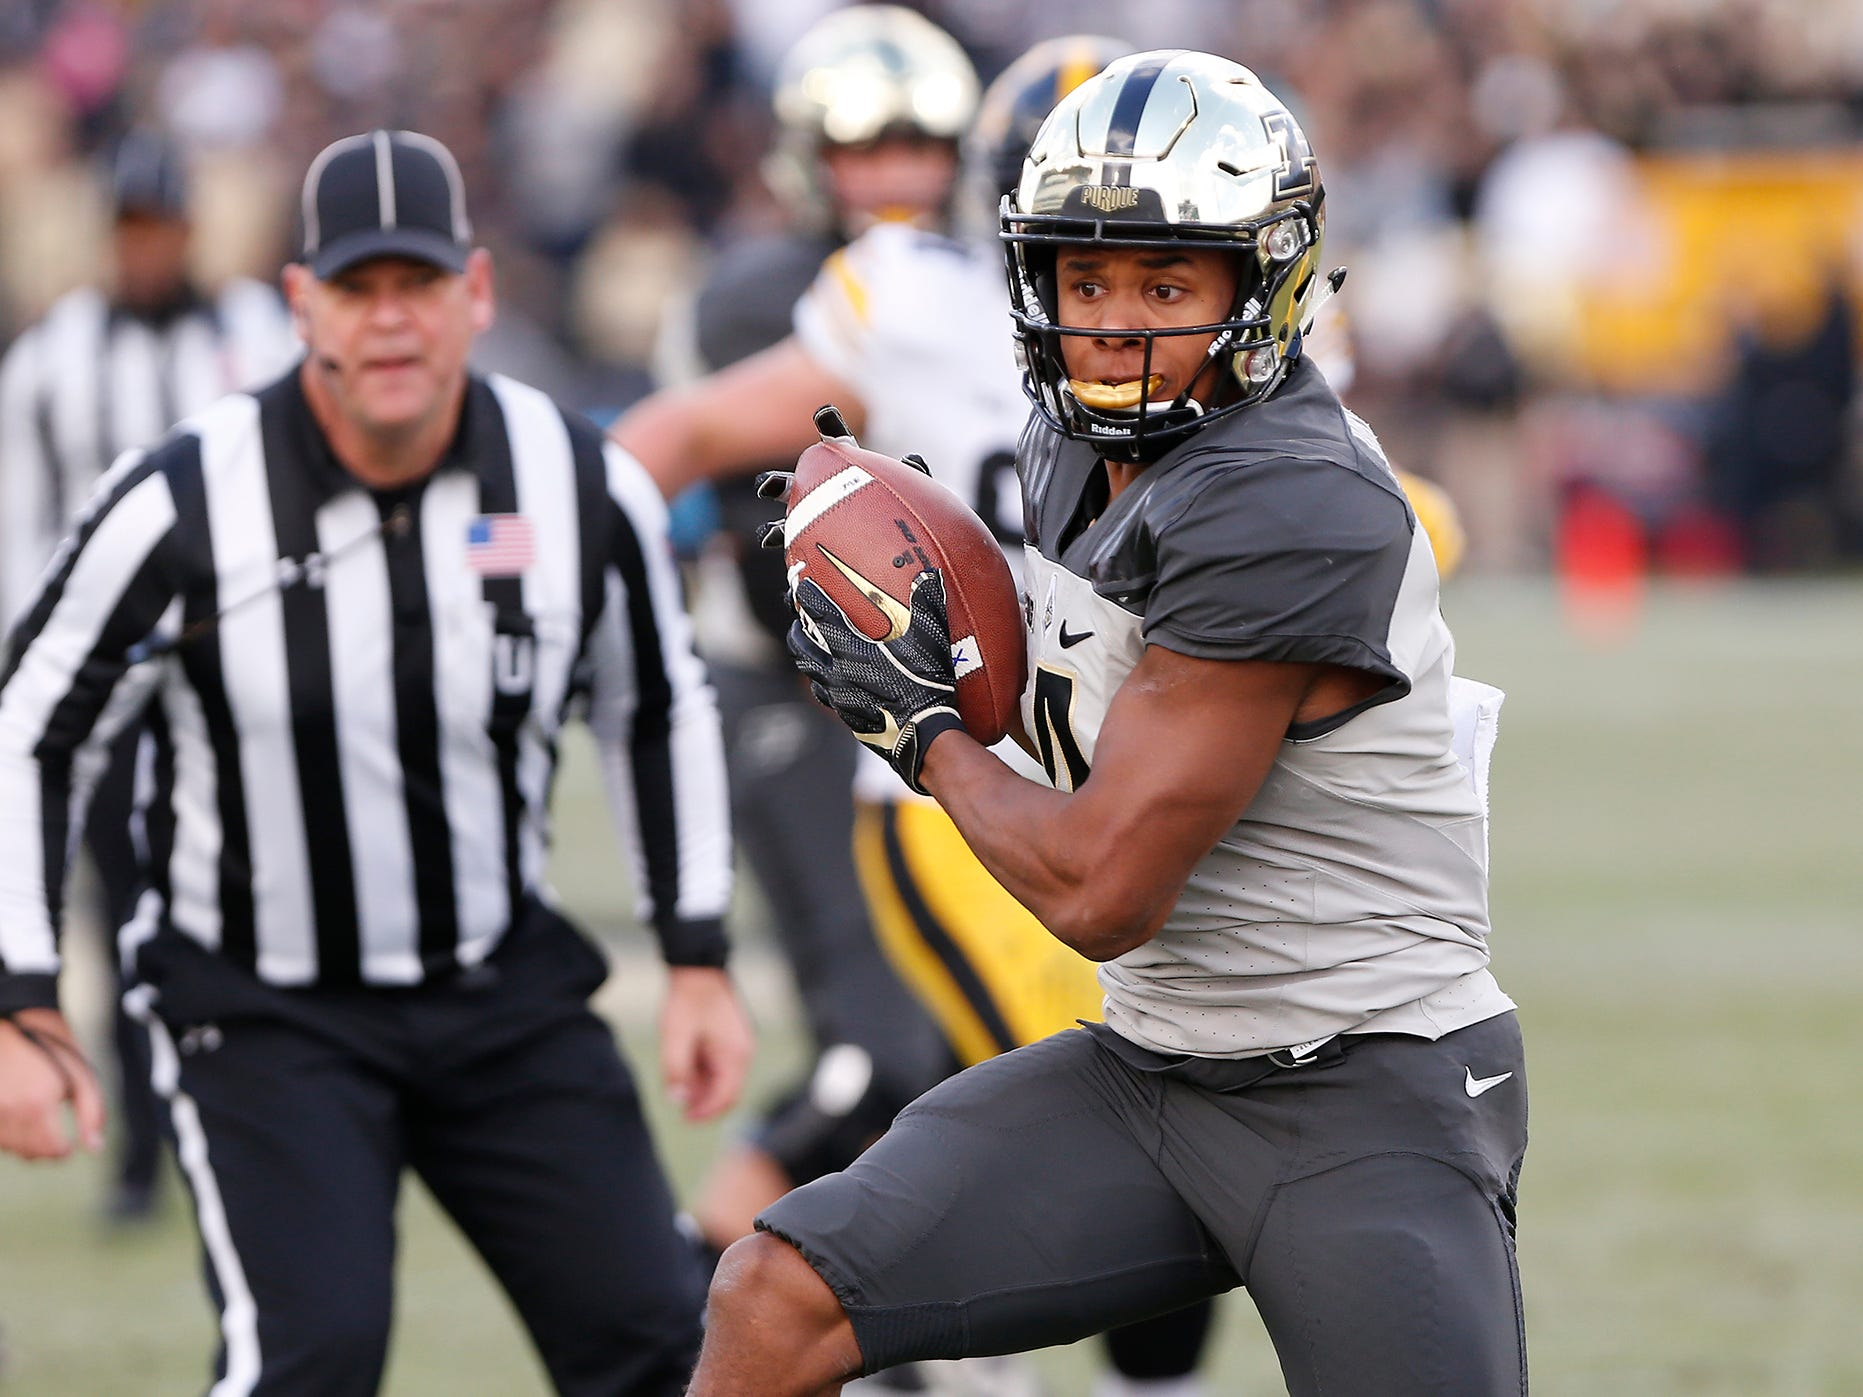 Rondale Moore of Purdue with a first half pass reception against Iowa Saturday, November 3, 2018, at Ross-Ade Stadium. Purdue defeated Iowa 38-36.